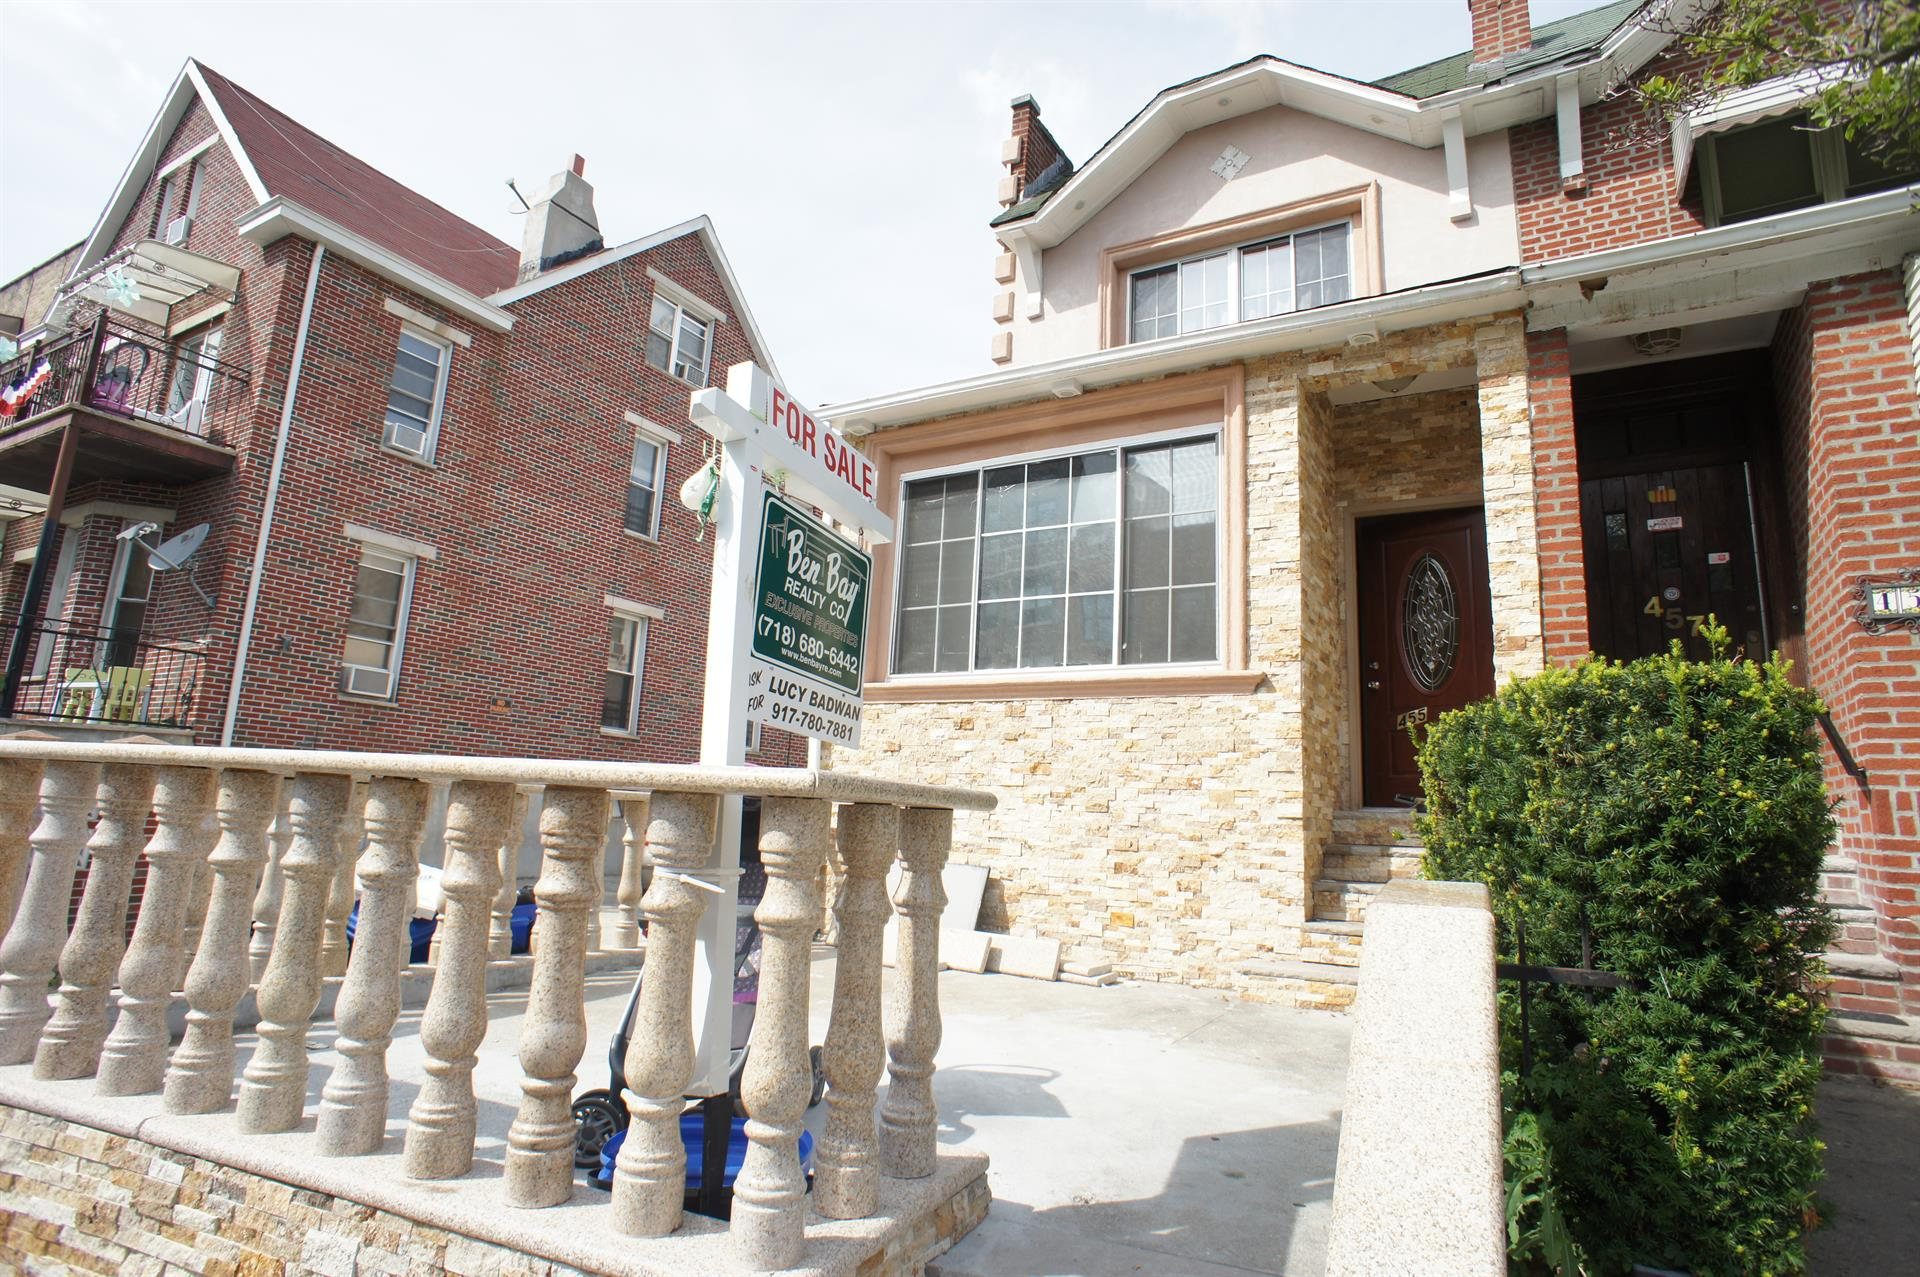 Multi-Family Home for Sale at 455 Senator Street Brooklyn, New York 11220 United States